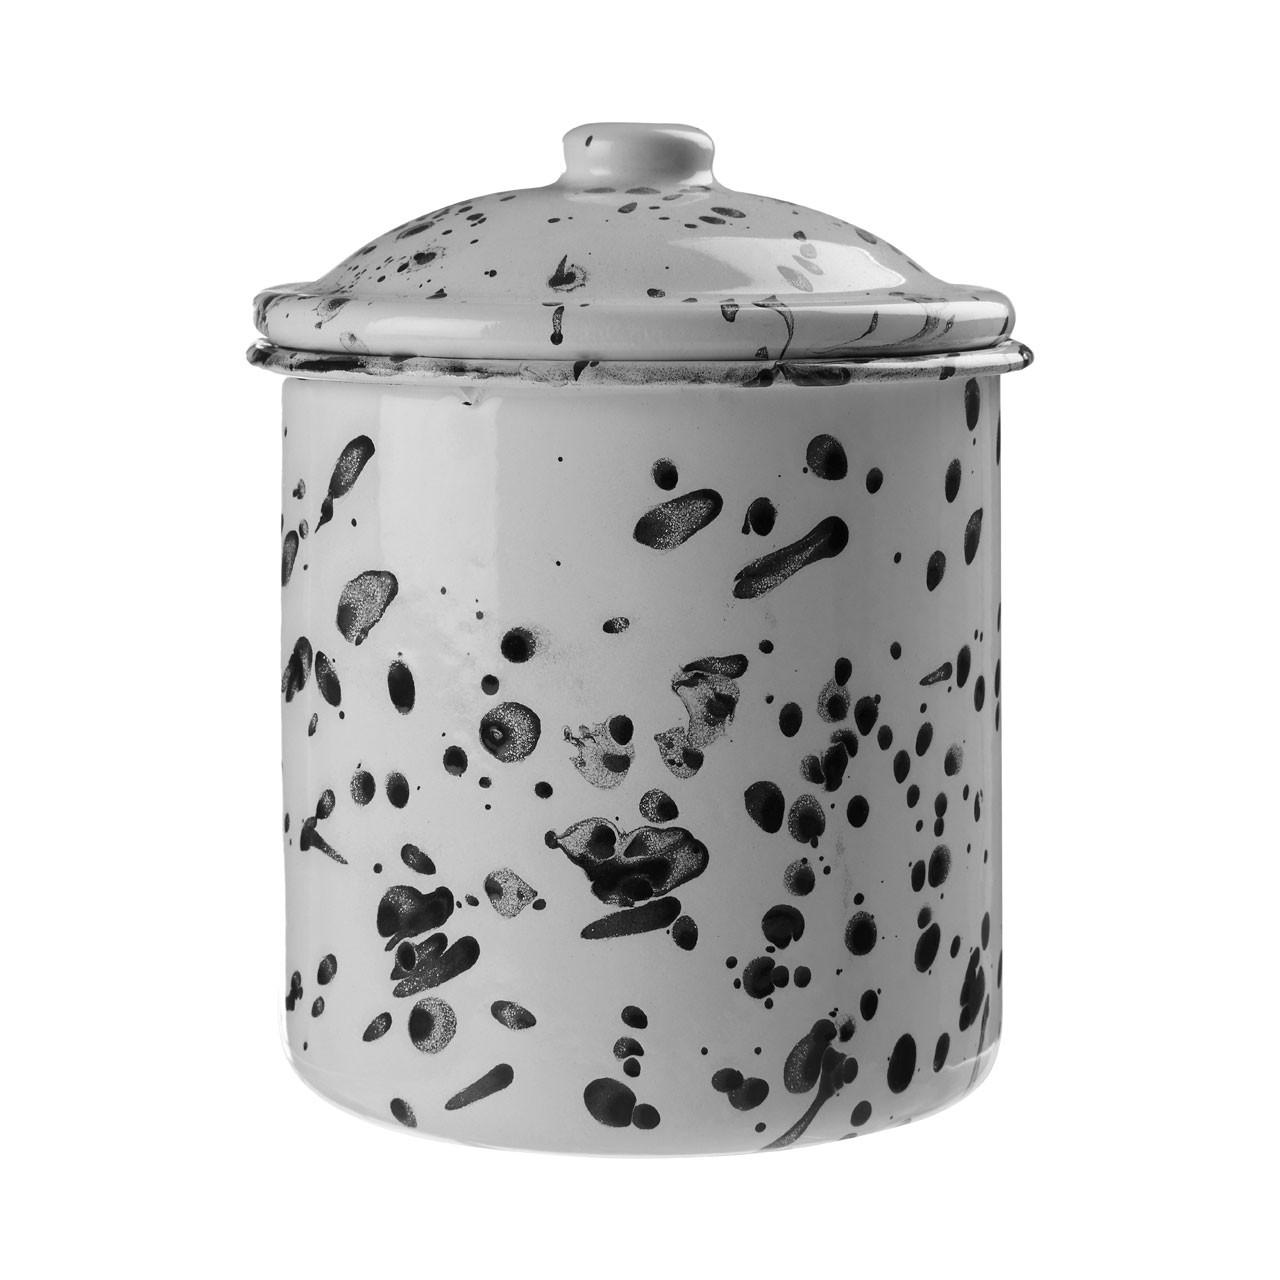 Hygge Medium Kitchen Food Storage Canister